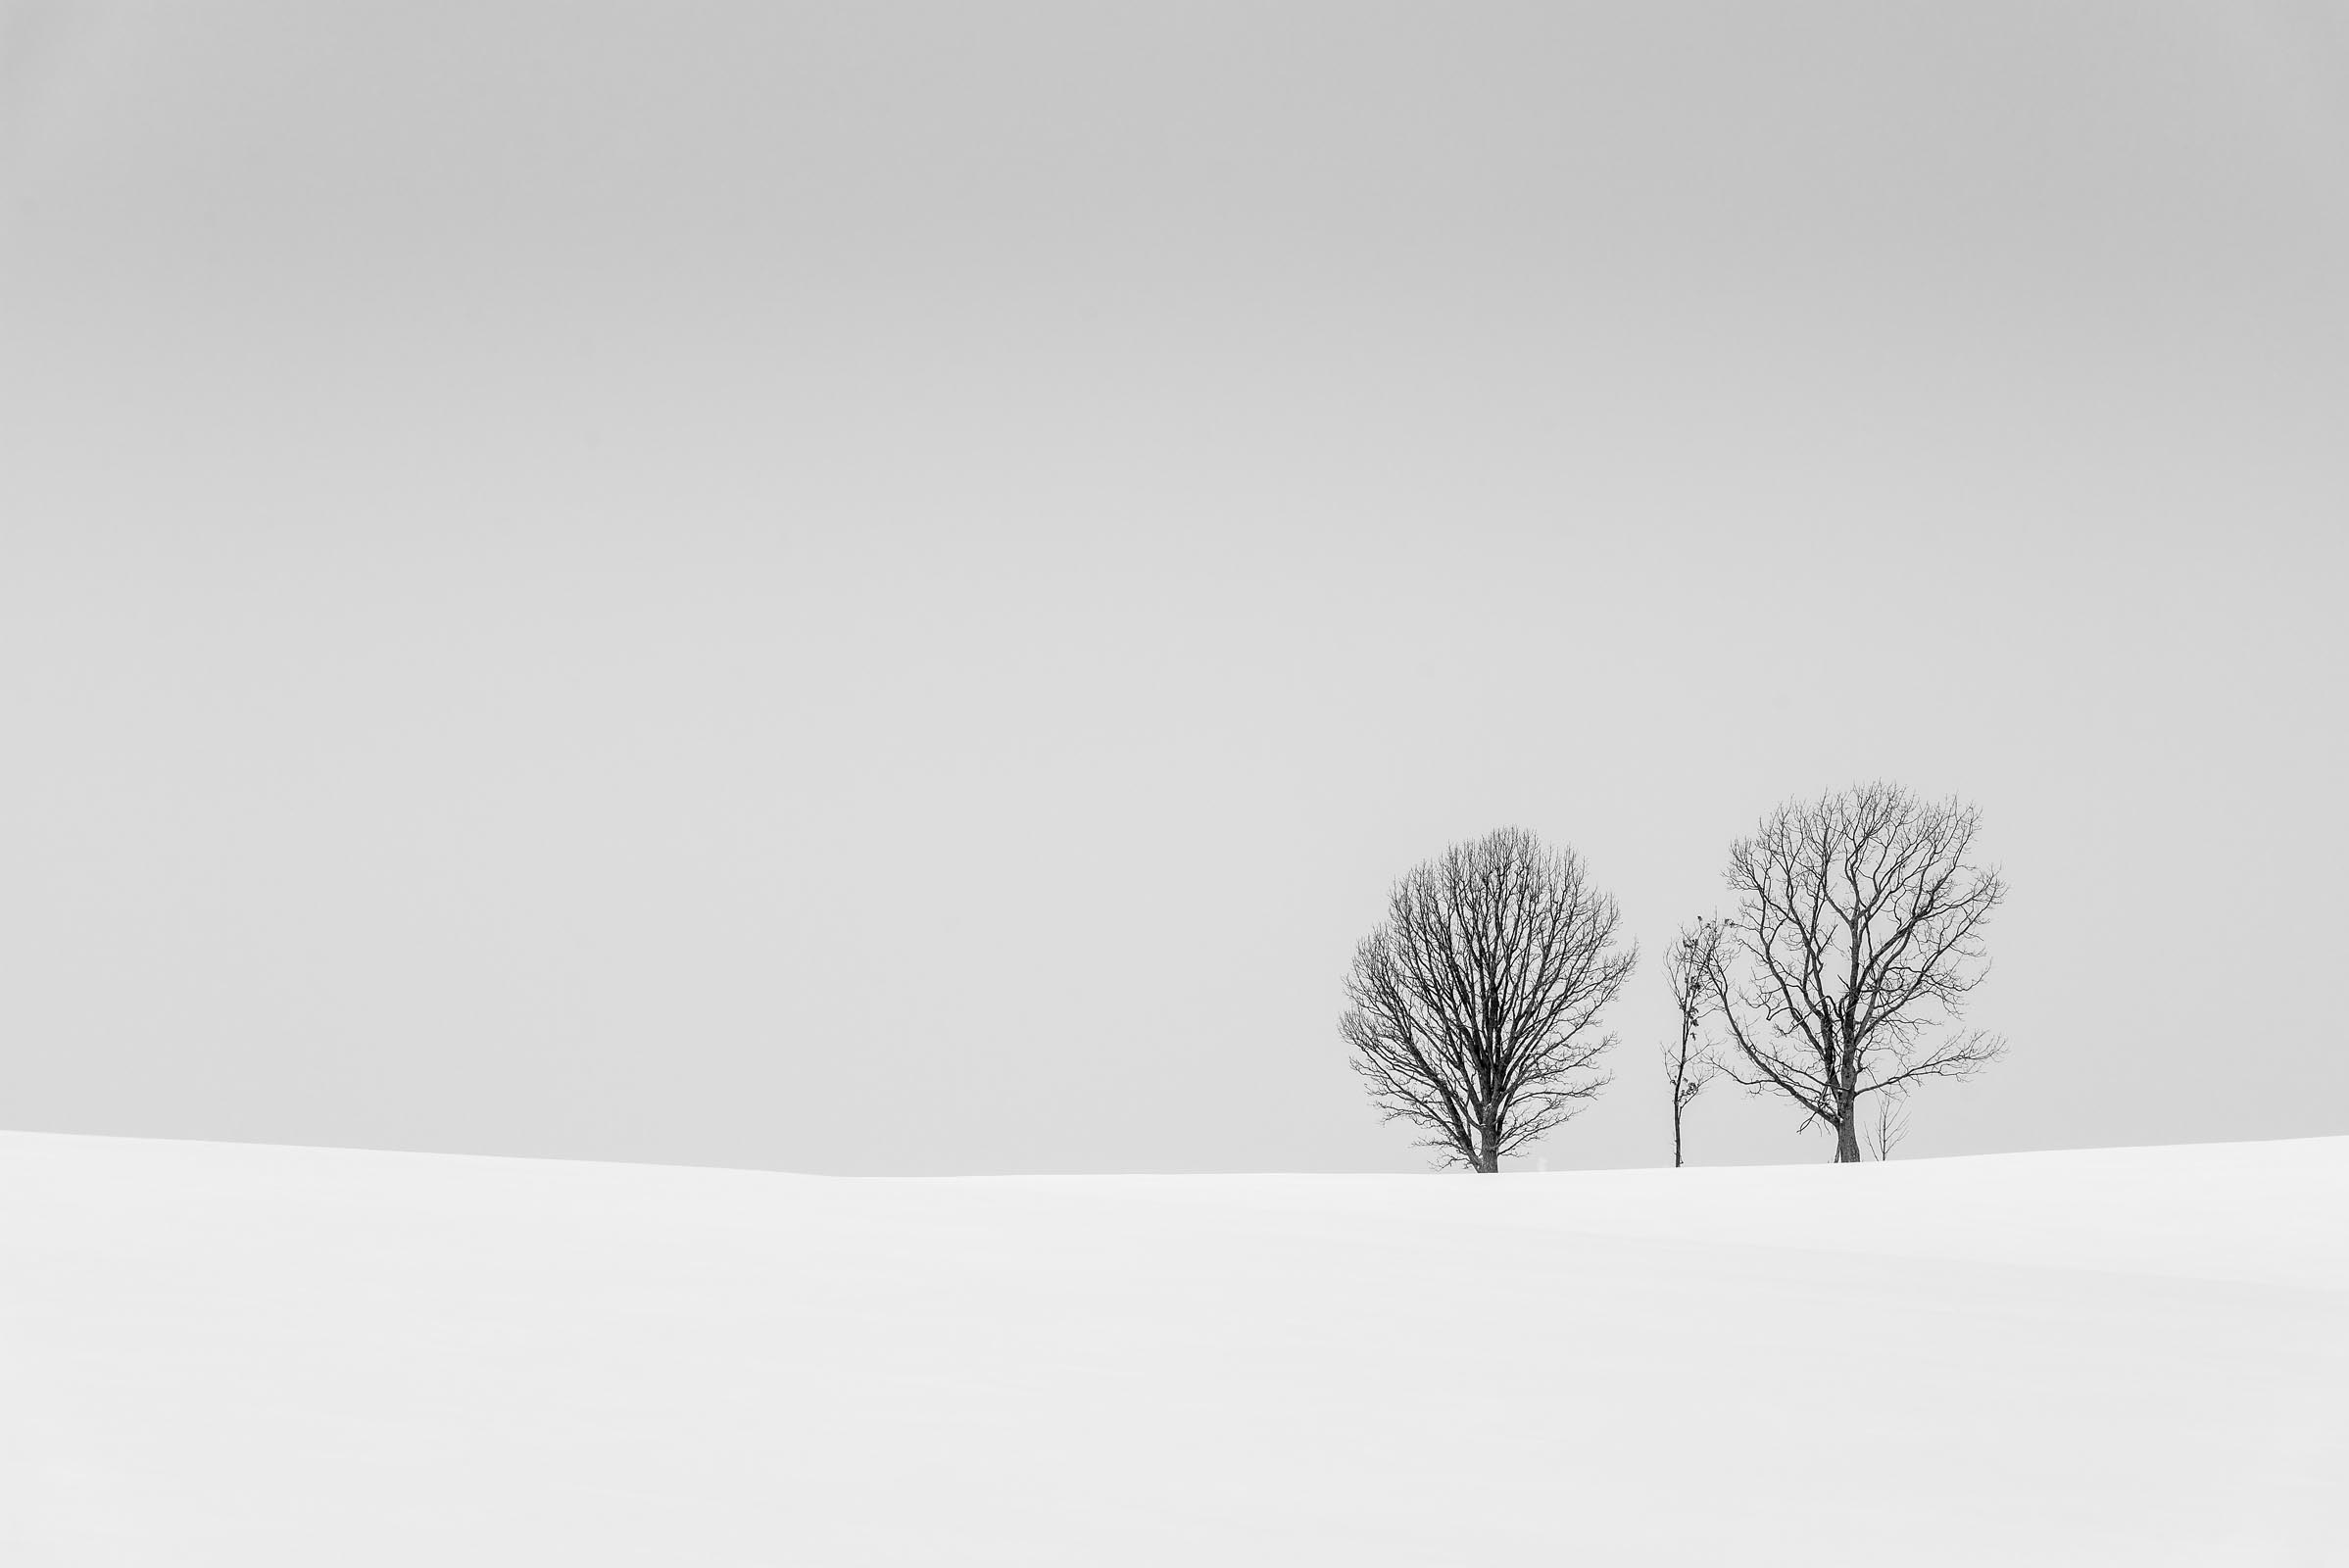 Photograph of Parent-Child-Trees in Biei , Japan by Brent Goldman Photography